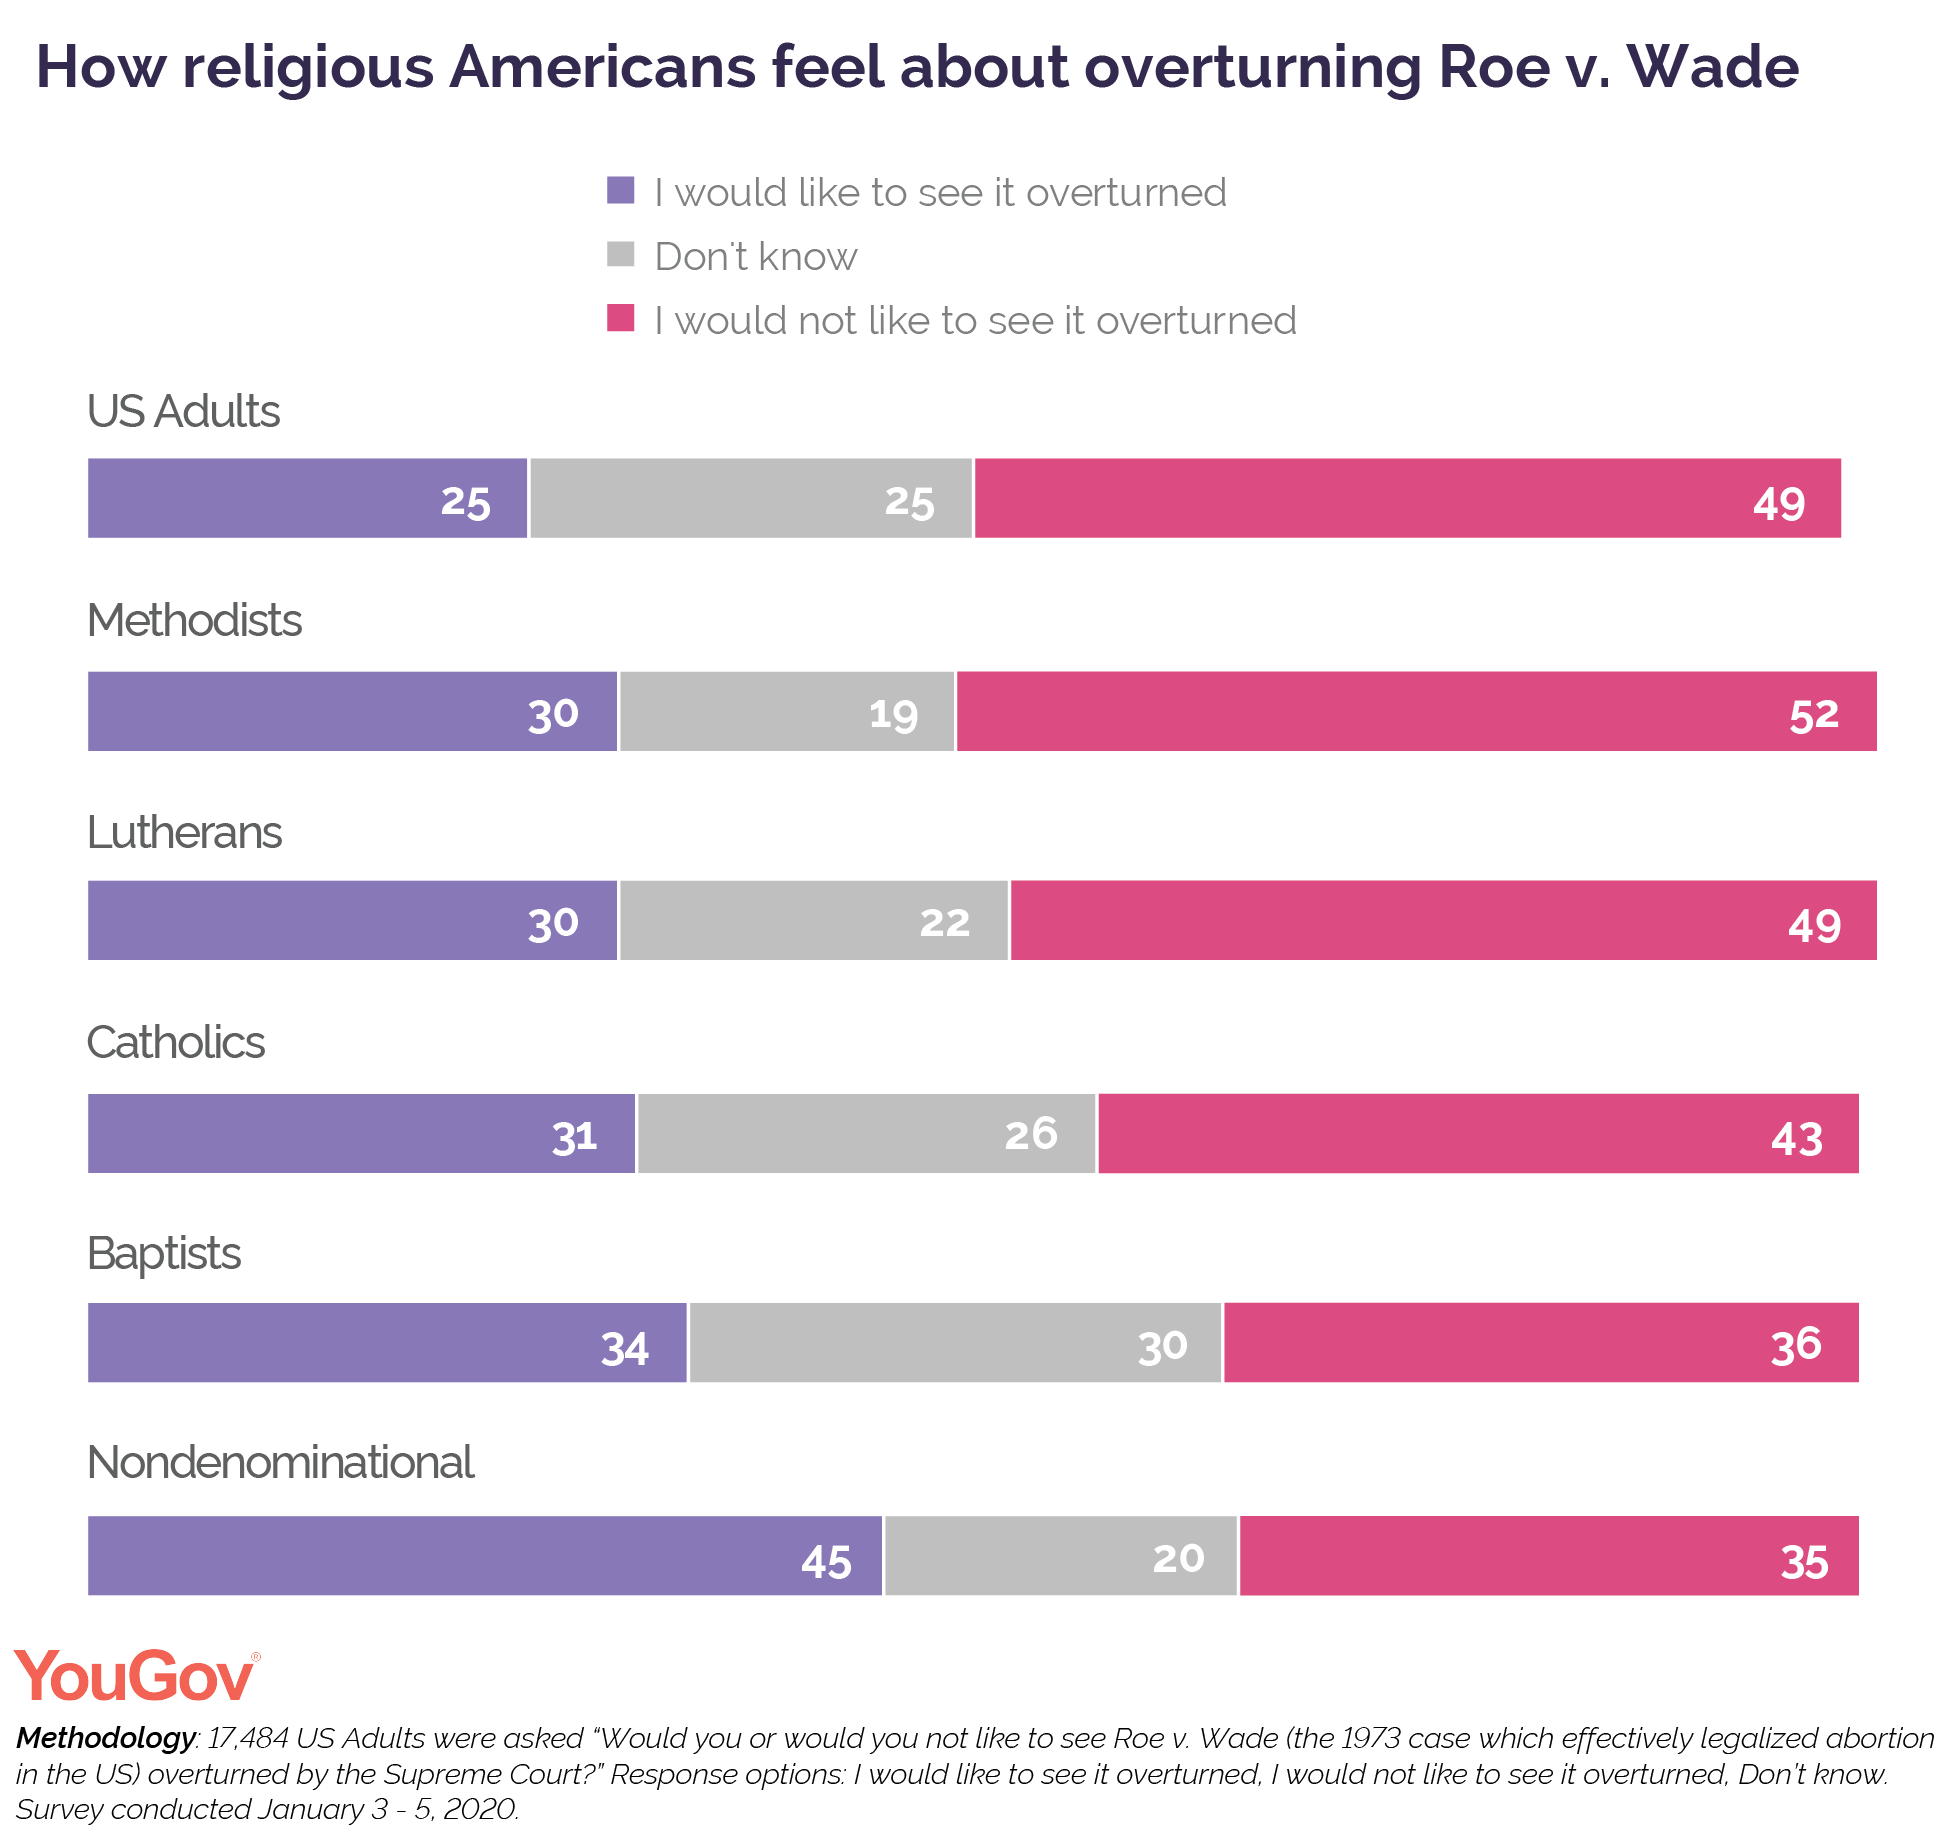 How religious Americans feel about overturning Roe v Wade